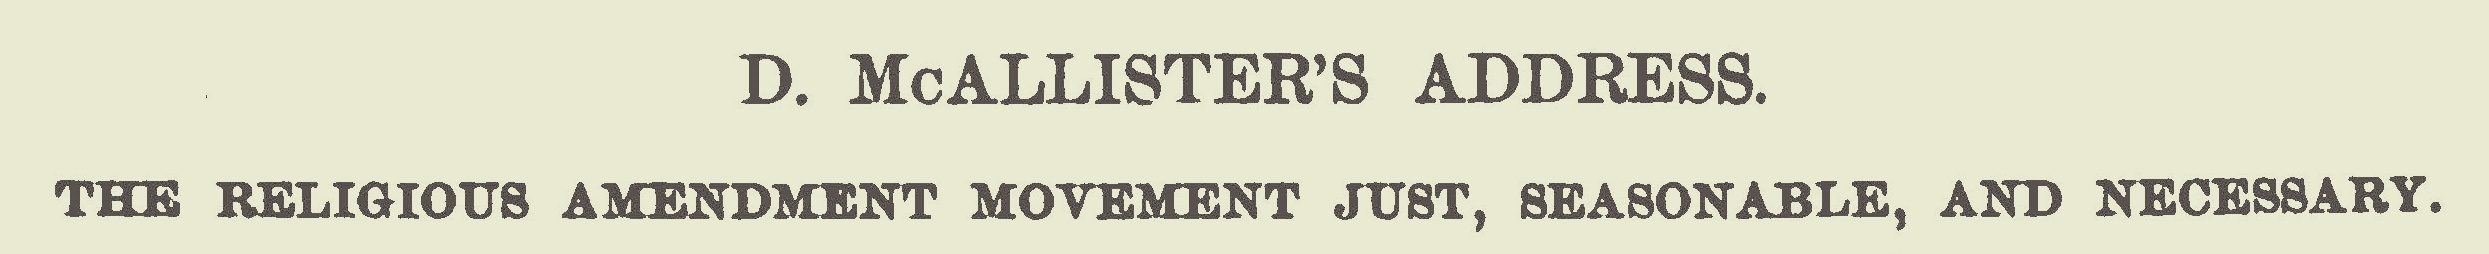 McAllister, David, The Religious Amendment Movement Title Page.jpg